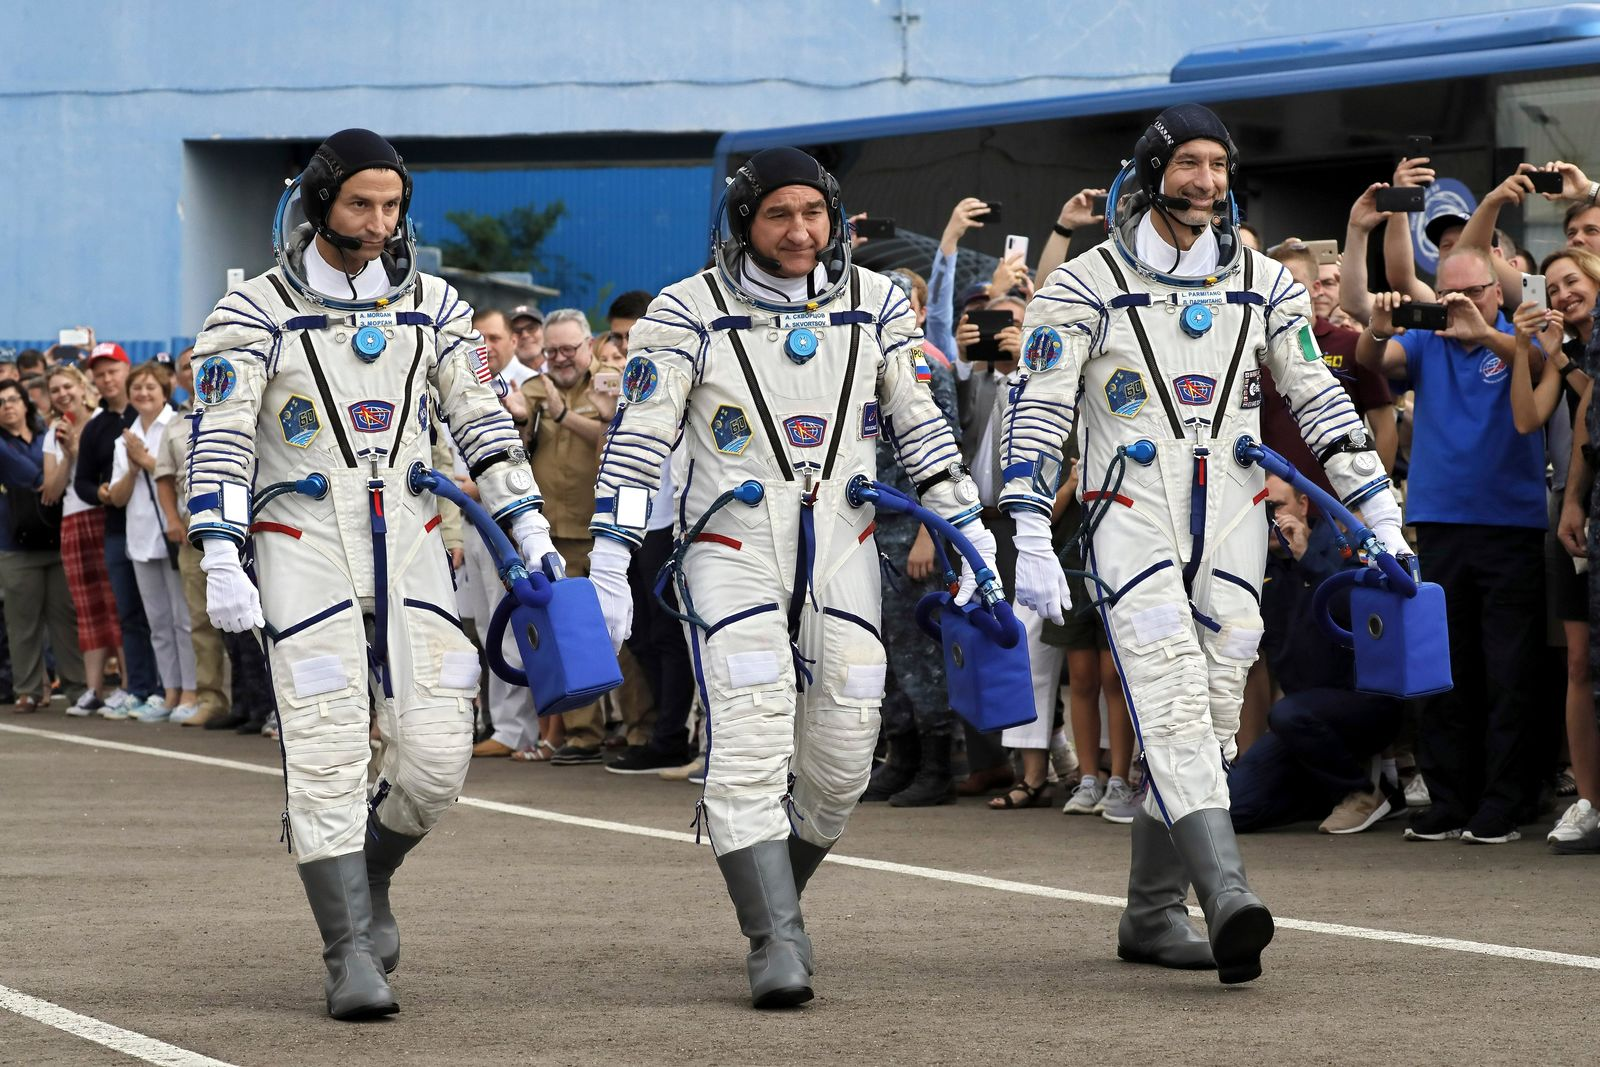 From left: U.S. astronaut Andrew Morgan, Russian cosmonaut Alexander Skvortsov and Italian astronaut Luca Parmitano, members of the main crew of the expedition to the International Space Station (ISS), walk prior the launch of Soyuz MS-13 space ship at the Russian leased Baikonur cosmodrome, Kazakhstan, Saturday, July 20, 2019. (AP Photo/Yuri Kochetkov, Pool)